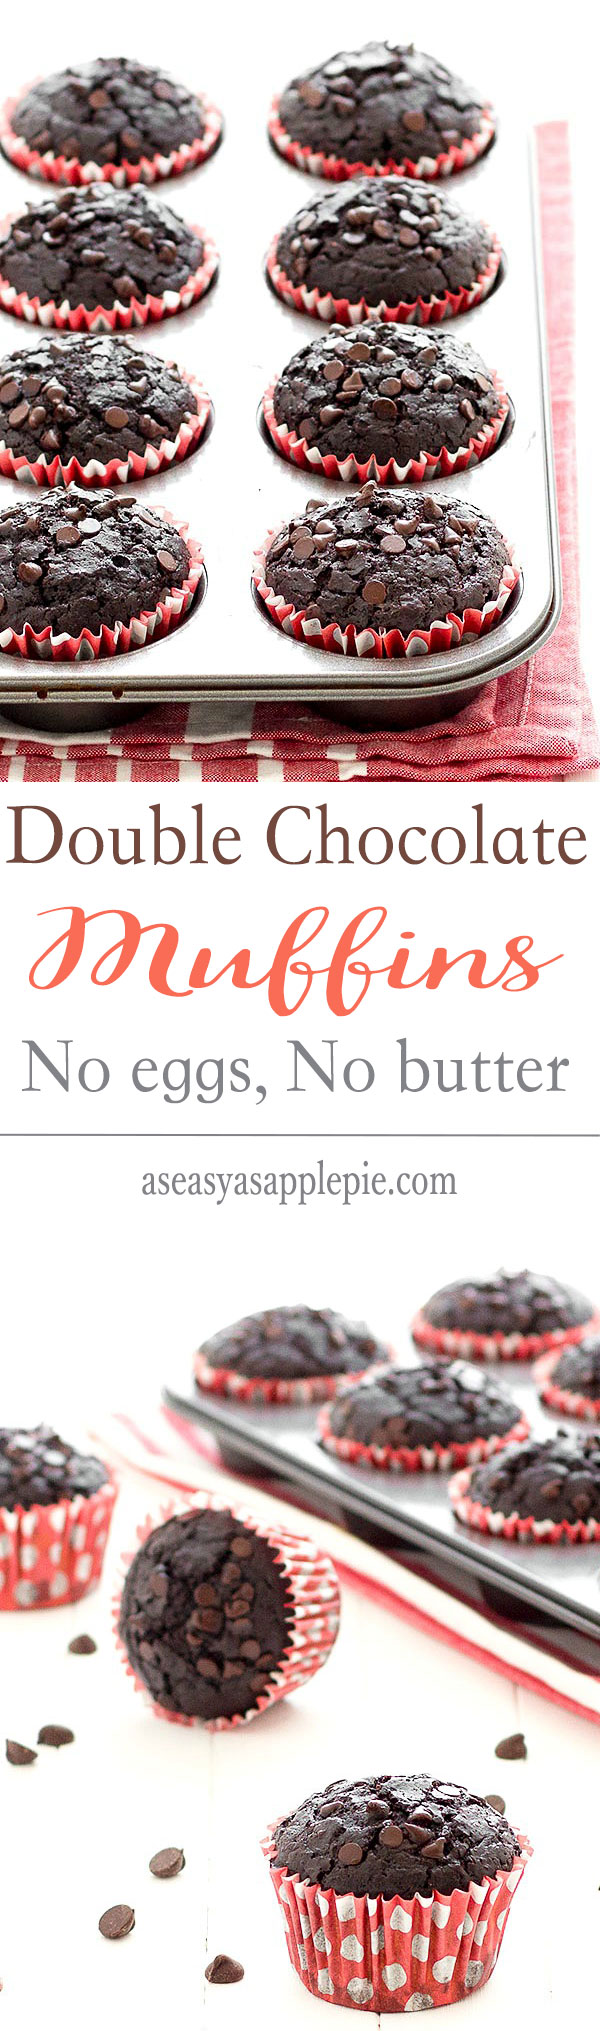 These double chocolate muffins have no eggs and no butter. They are chocolatey, super moist with a very tender crumb. Quick and easy to make